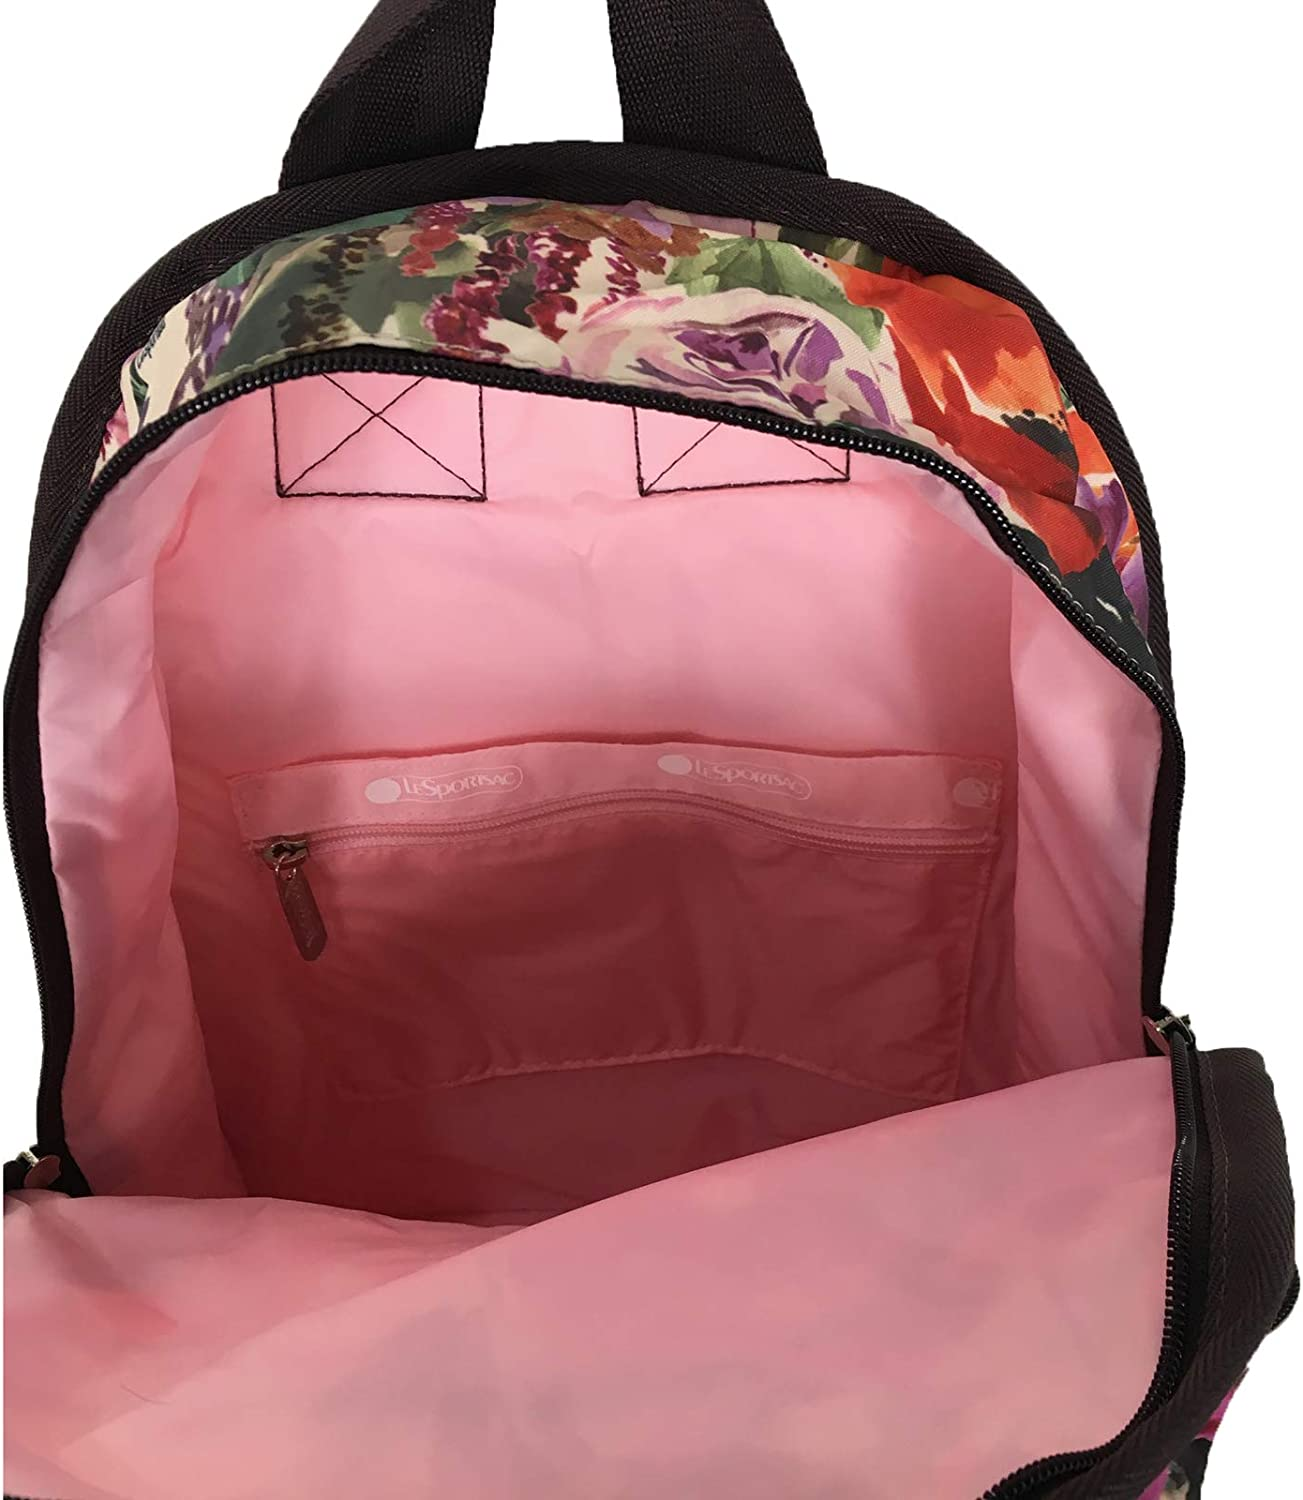 Harmony Floral LeSportsac Floral Print Basic Backpack